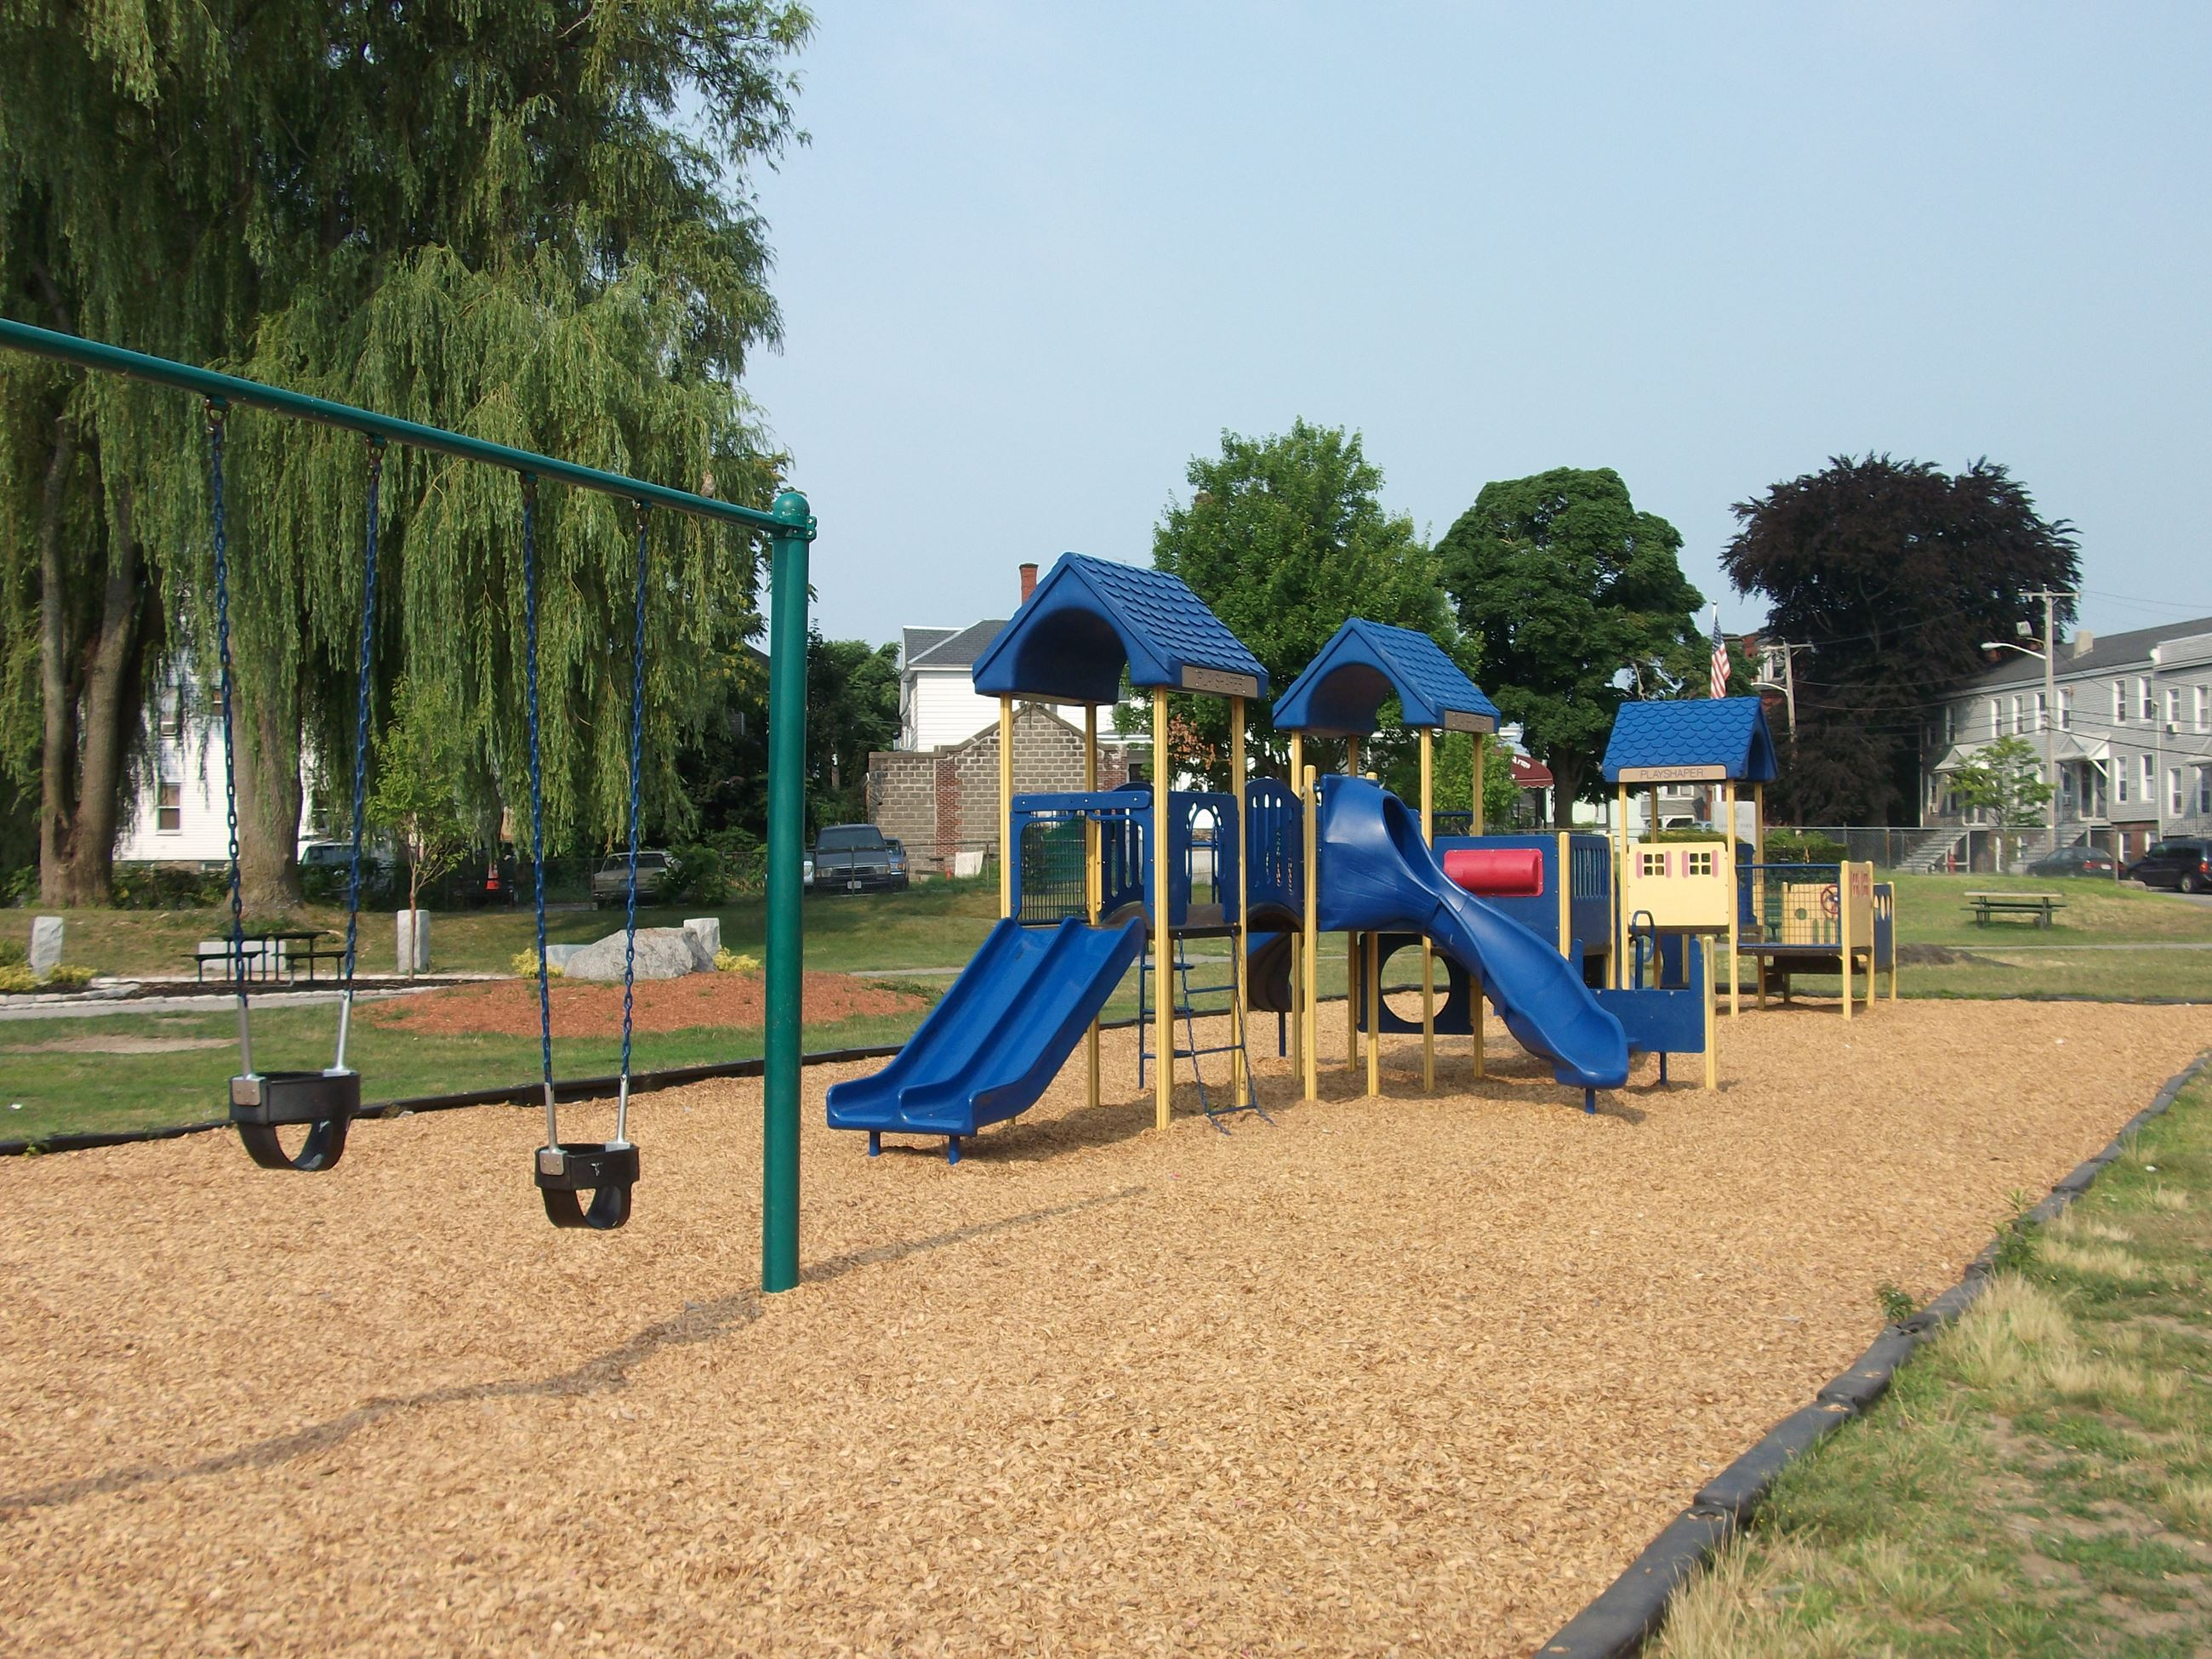 Armory Park playground with swings and slides